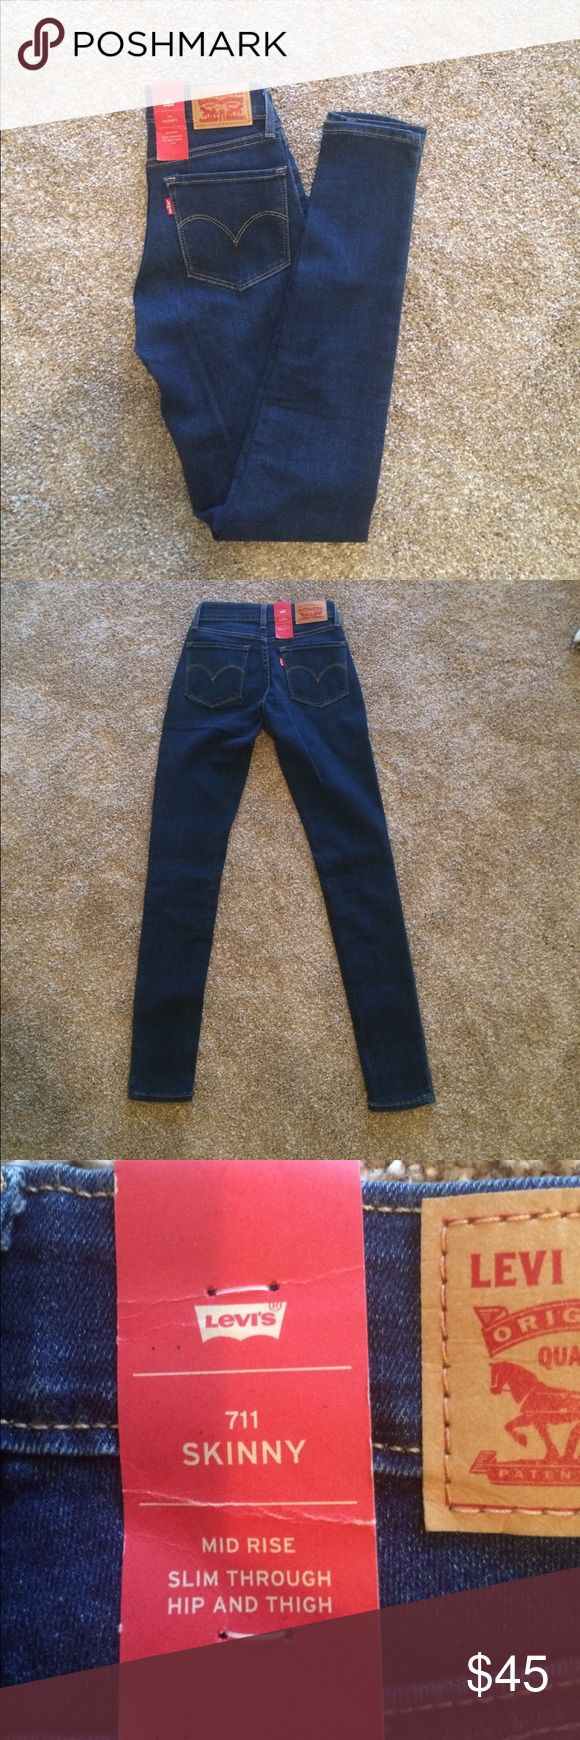 🚛MOVING SALE🚛MAKE OFFER🚛 NWT Levis 711 skinny New with tag size 24 inseam 32 mid rise skinny 711 Levi's Levi's Jeans Skinny